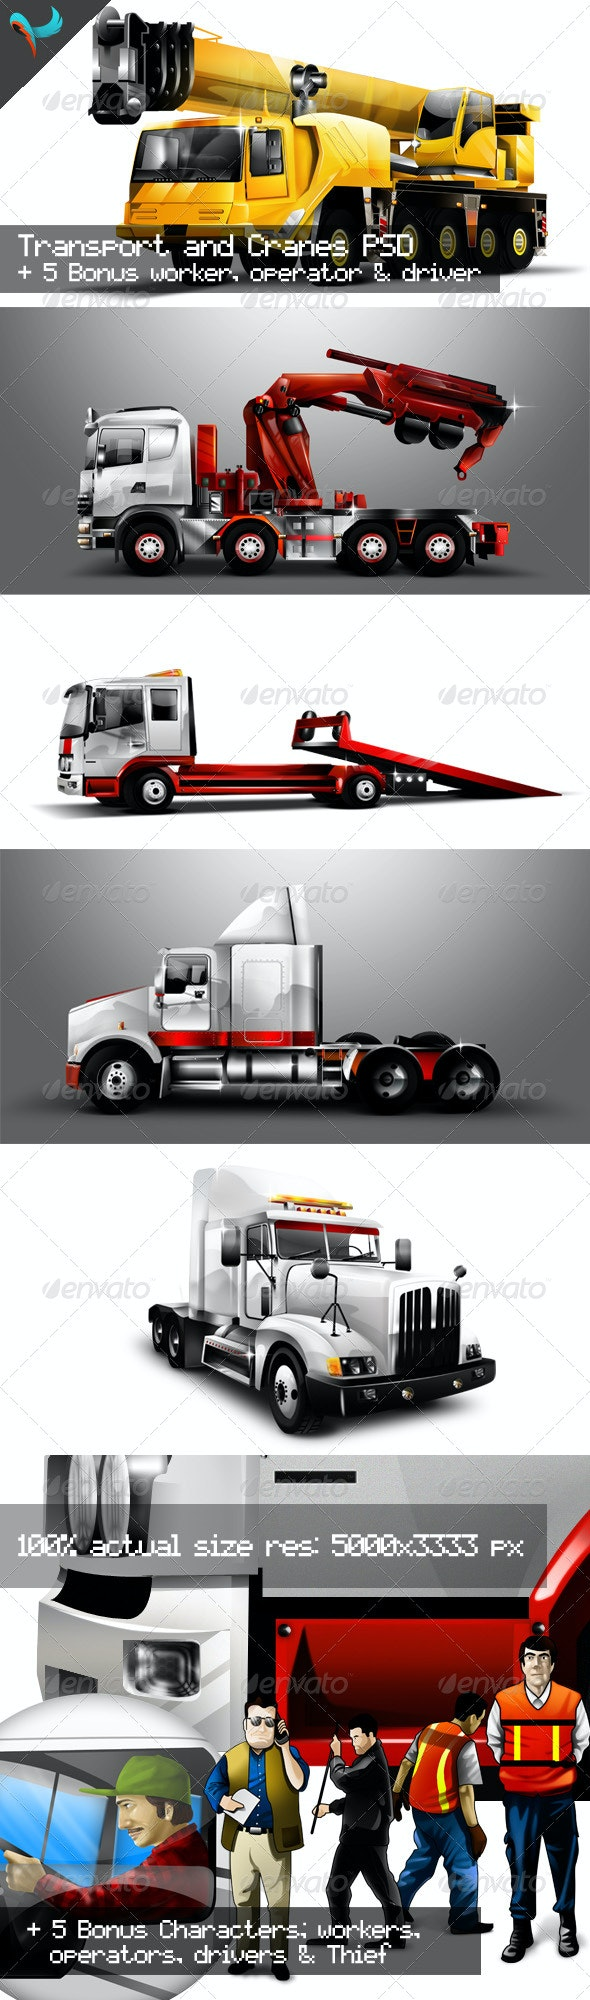 Transport Cranes And Vehicles Pack 1 - Objects Illustrations